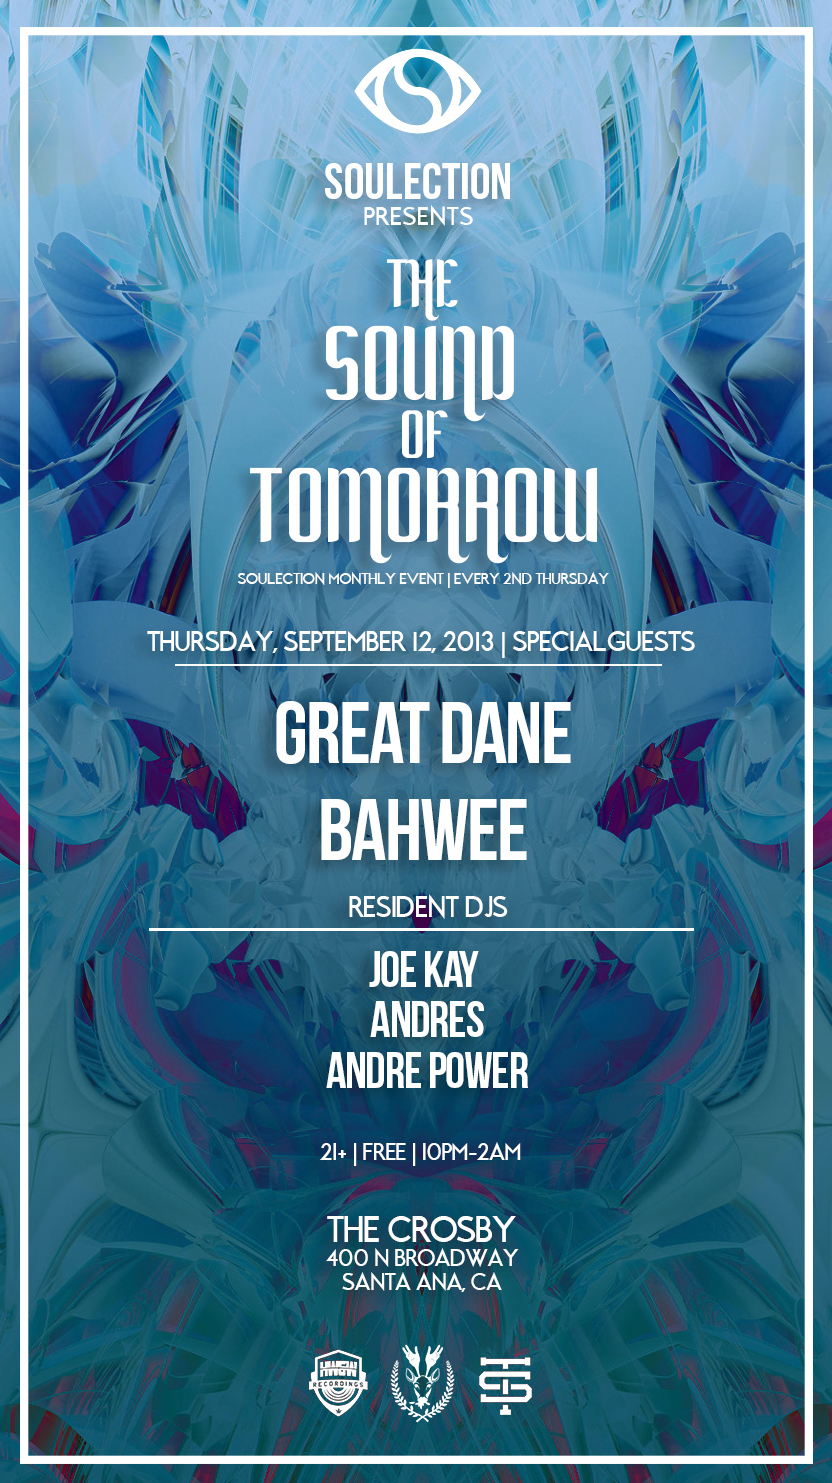 The Sound of Tomorrow | Every 2nd Thursday  SPECIAL GUESTS  Great Dane (Alpha Pup/Team Supreme)  Bahwee (Huh What and Where)   After an intense session of over 6 Soulection events last month we are continuing the emphasis with Huh What and Where and Team Supreme affiliates. This time along we are bringing in the heavy hitter Great Dane who's live presence is similar to Brian Urlacher being on stage dropping the craziest bangers that will push you and your girl a few feet back. Representing one of our favorite crews: Team Supreme! On the other hand we have the true mastermind Bahwee who is behind one of the most exciting labels (HW&W) out in the world right now. He subtly produces heaters that you must hear by coming to this event. The Sound of Tomorrow is going to be an evening of quality music that you don't want to miss. Come see what all the talk is about. It's really about the music, nothing more. See you soon.   Resident DJ's Joe Kay Andres Andre Power  21+ | FREE all night | 10pm-2am  The Crosby 400 N.Broadway Santa Ana,CA  Discover:  http://imagreatdane.com/   http://  huhwhatandwhere.com/    Great Dane  https://soundcloud.com/  grrrreatdane   Bahwee  https://soundcloud.com/  bahwee